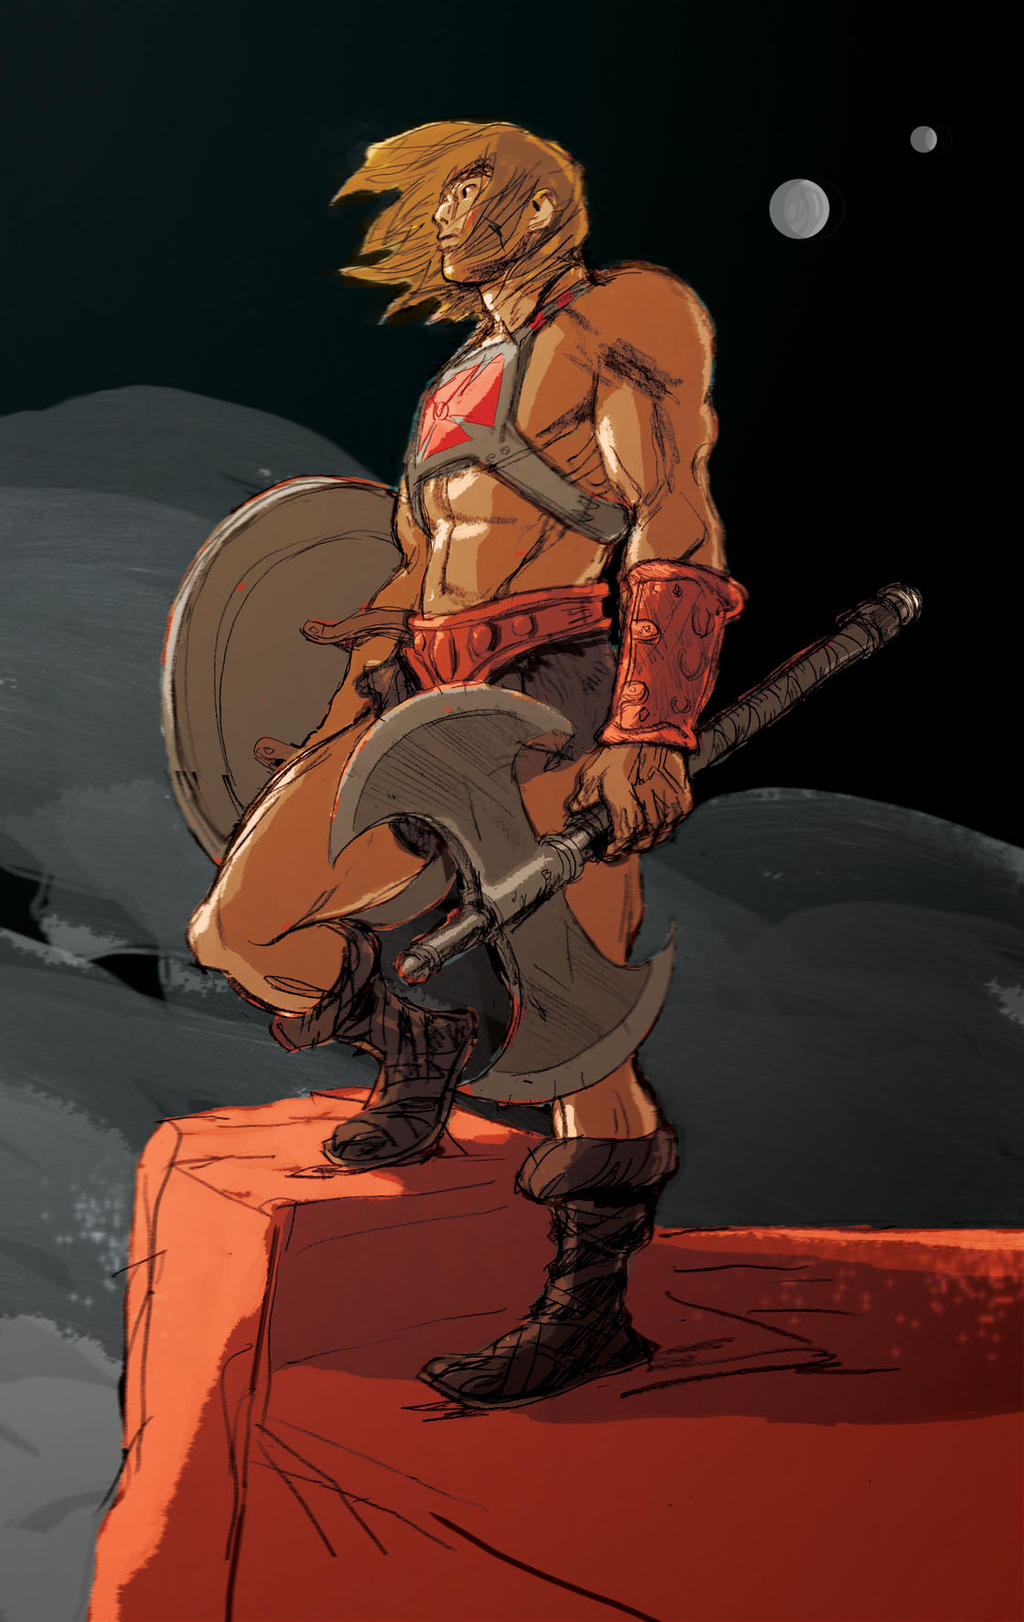 he man fan art by AntoineDode